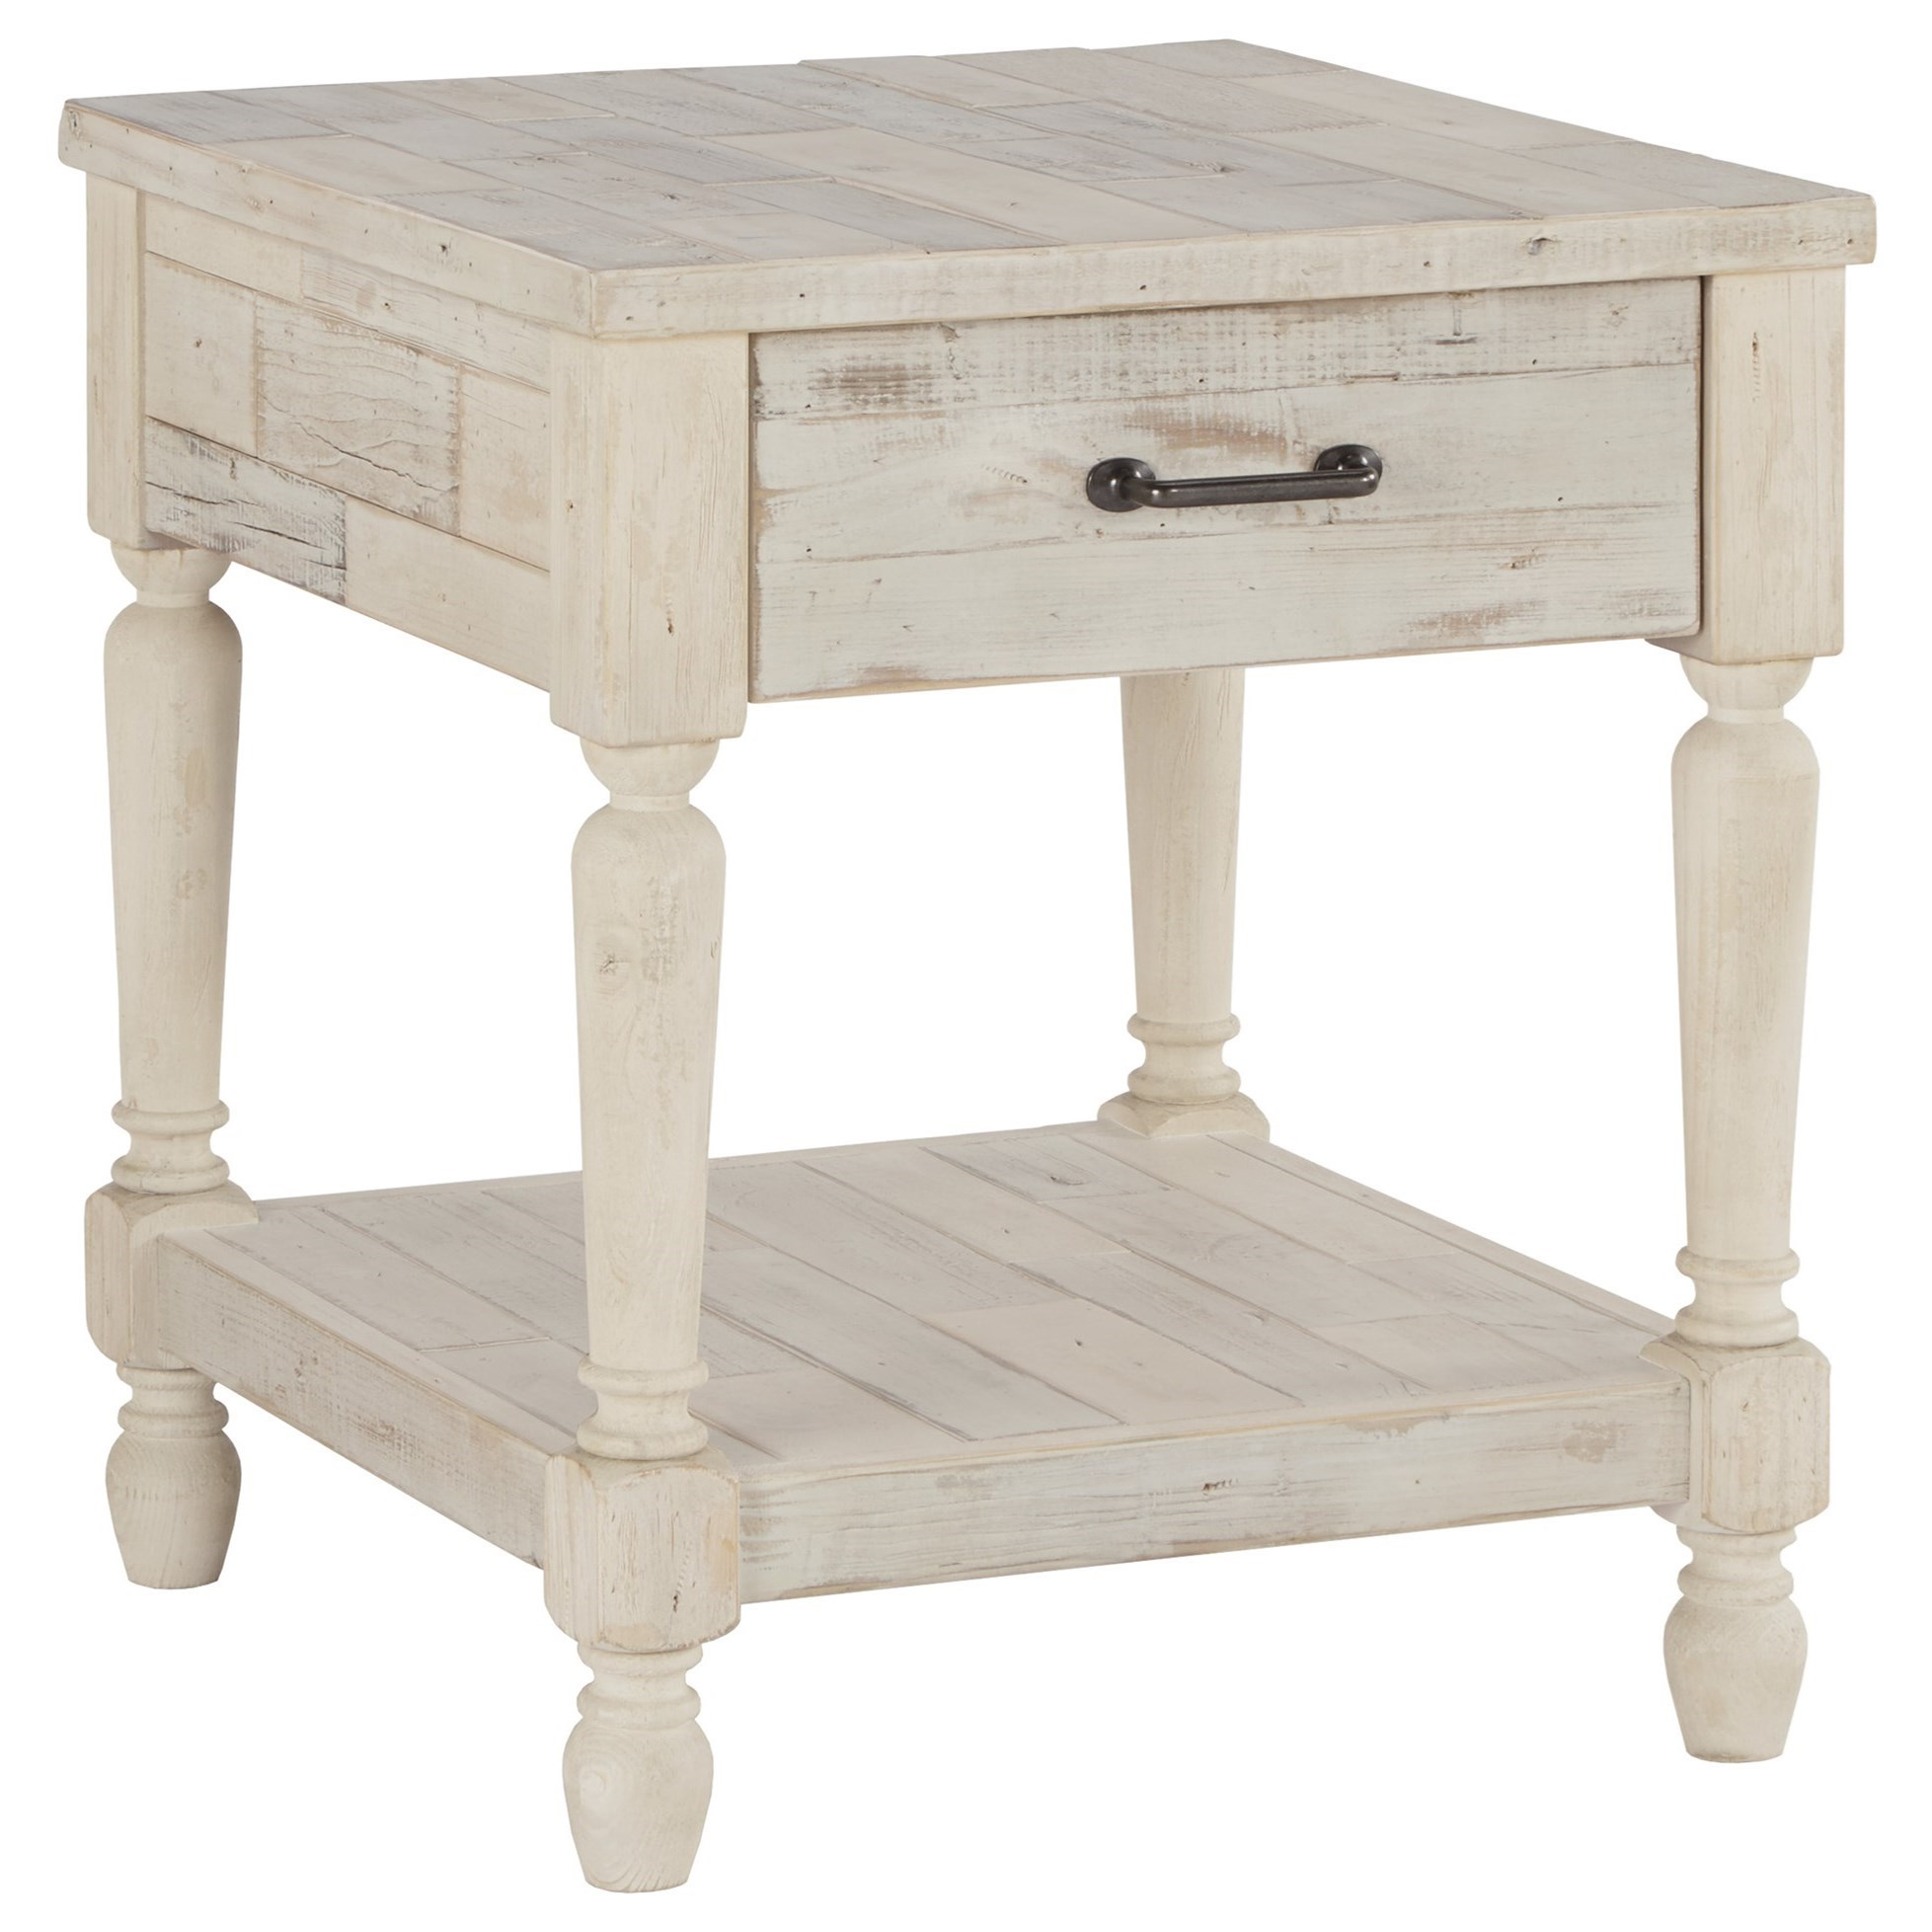 Signature Design by Ashley Shawnalore Rectangular End Table - Item Number: T782-3